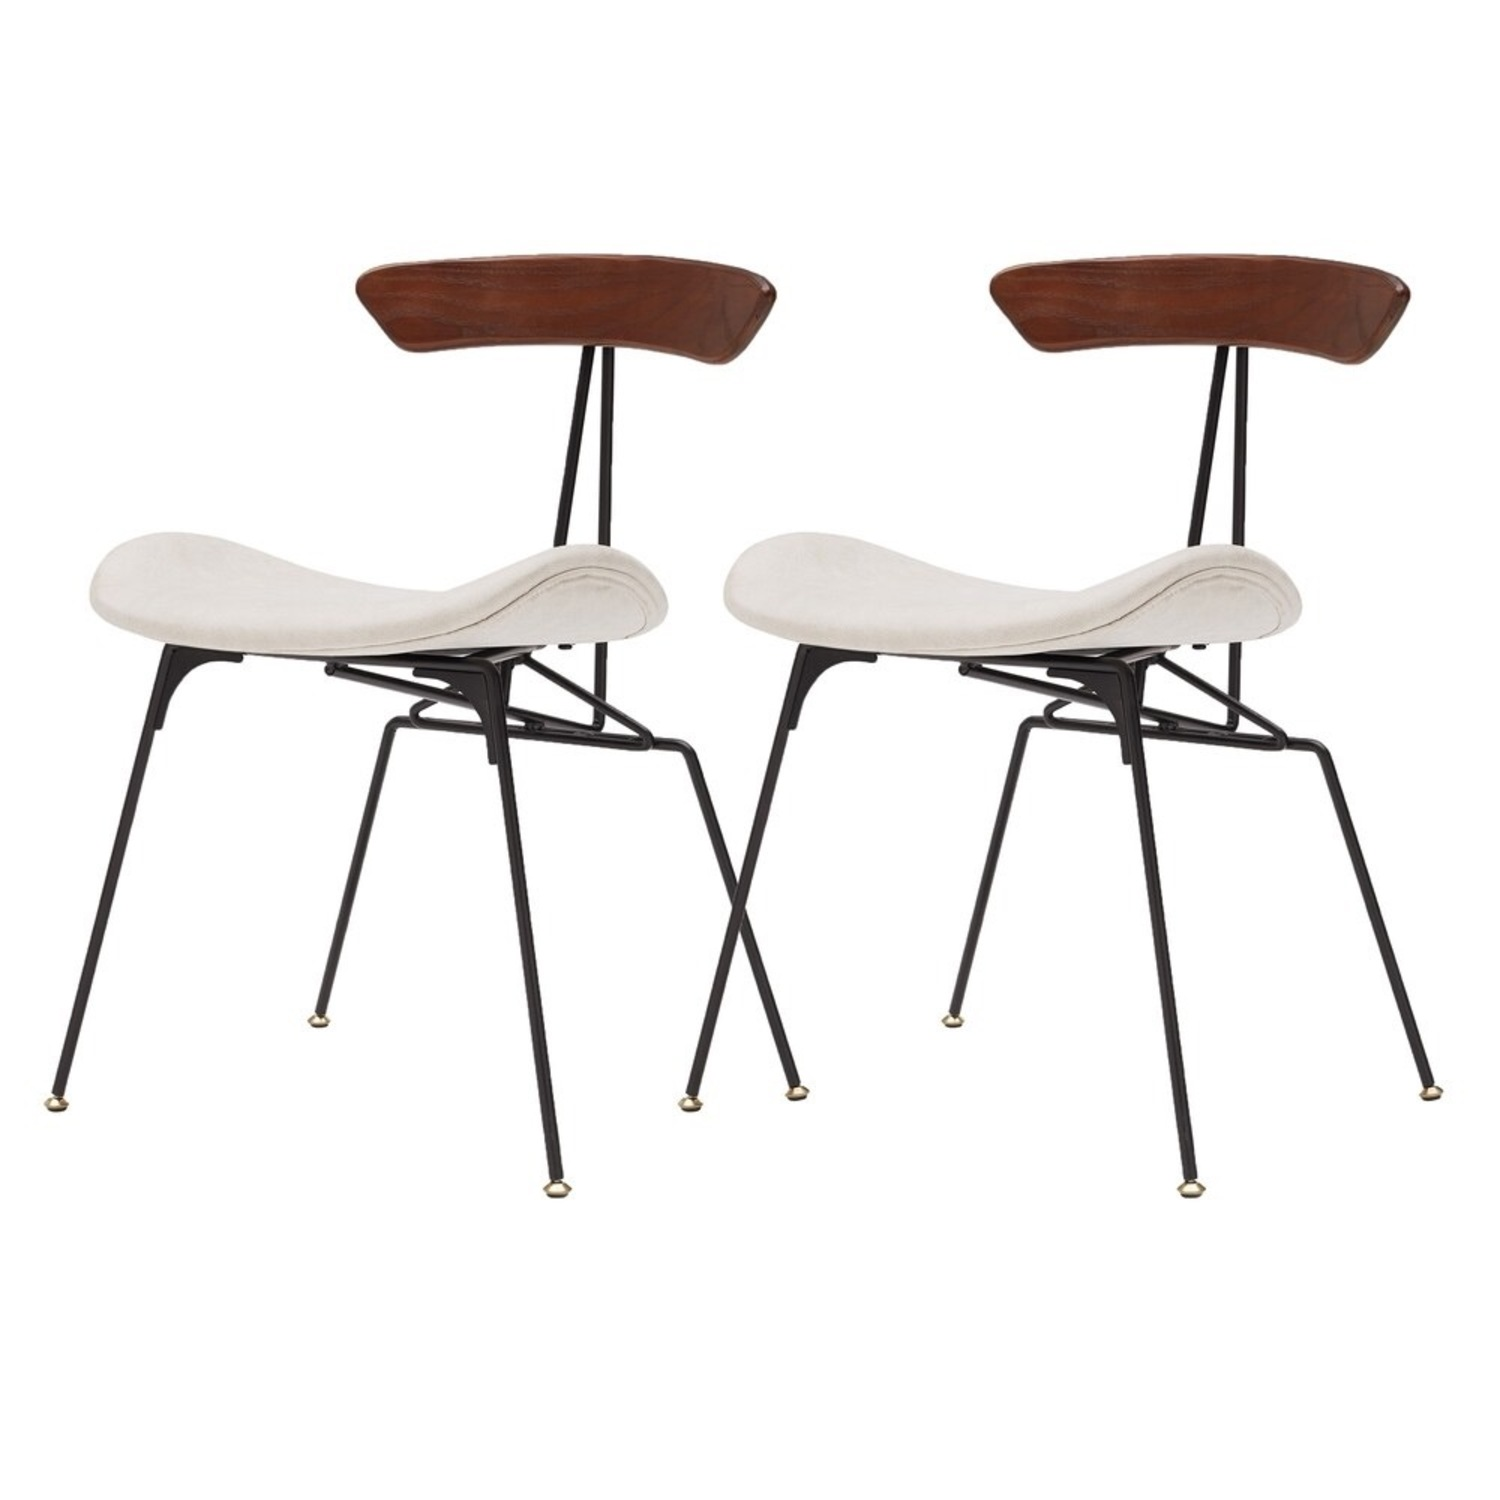 Contemporary Piece of Art Dining Chair - image-1